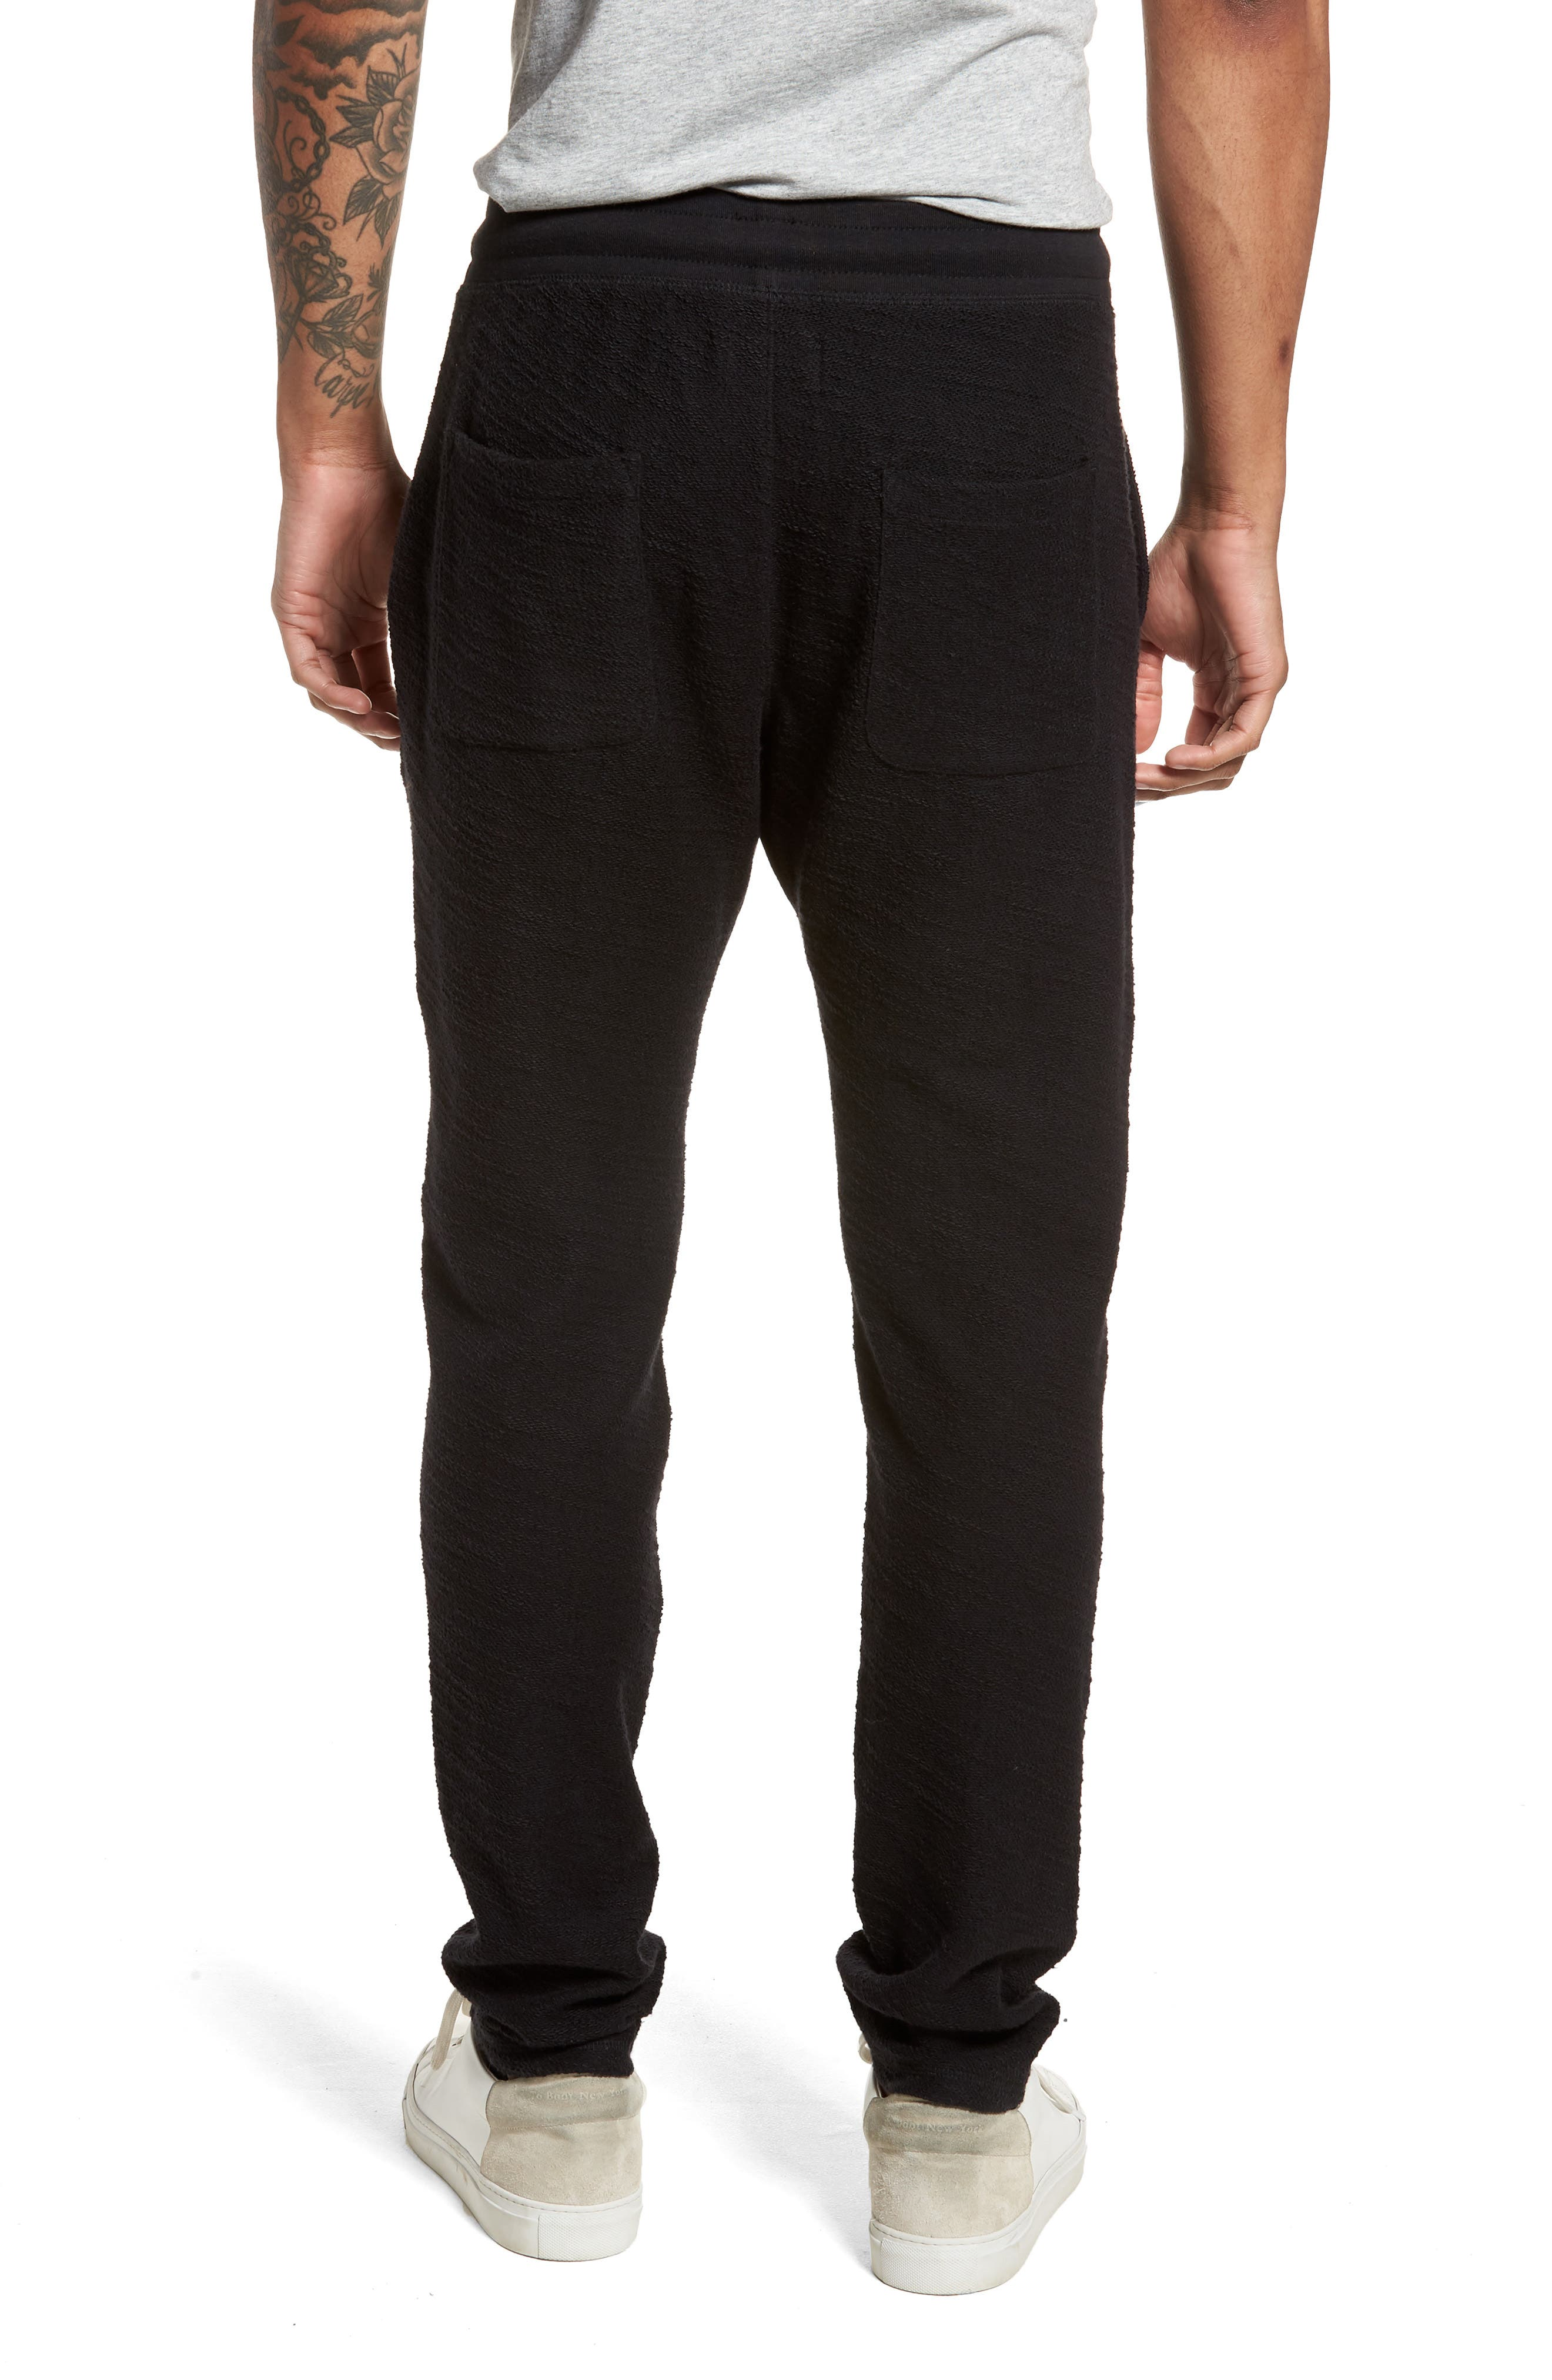 Alternate Image 2  - Goodlife Terry Cloth Cotton Blend Pants